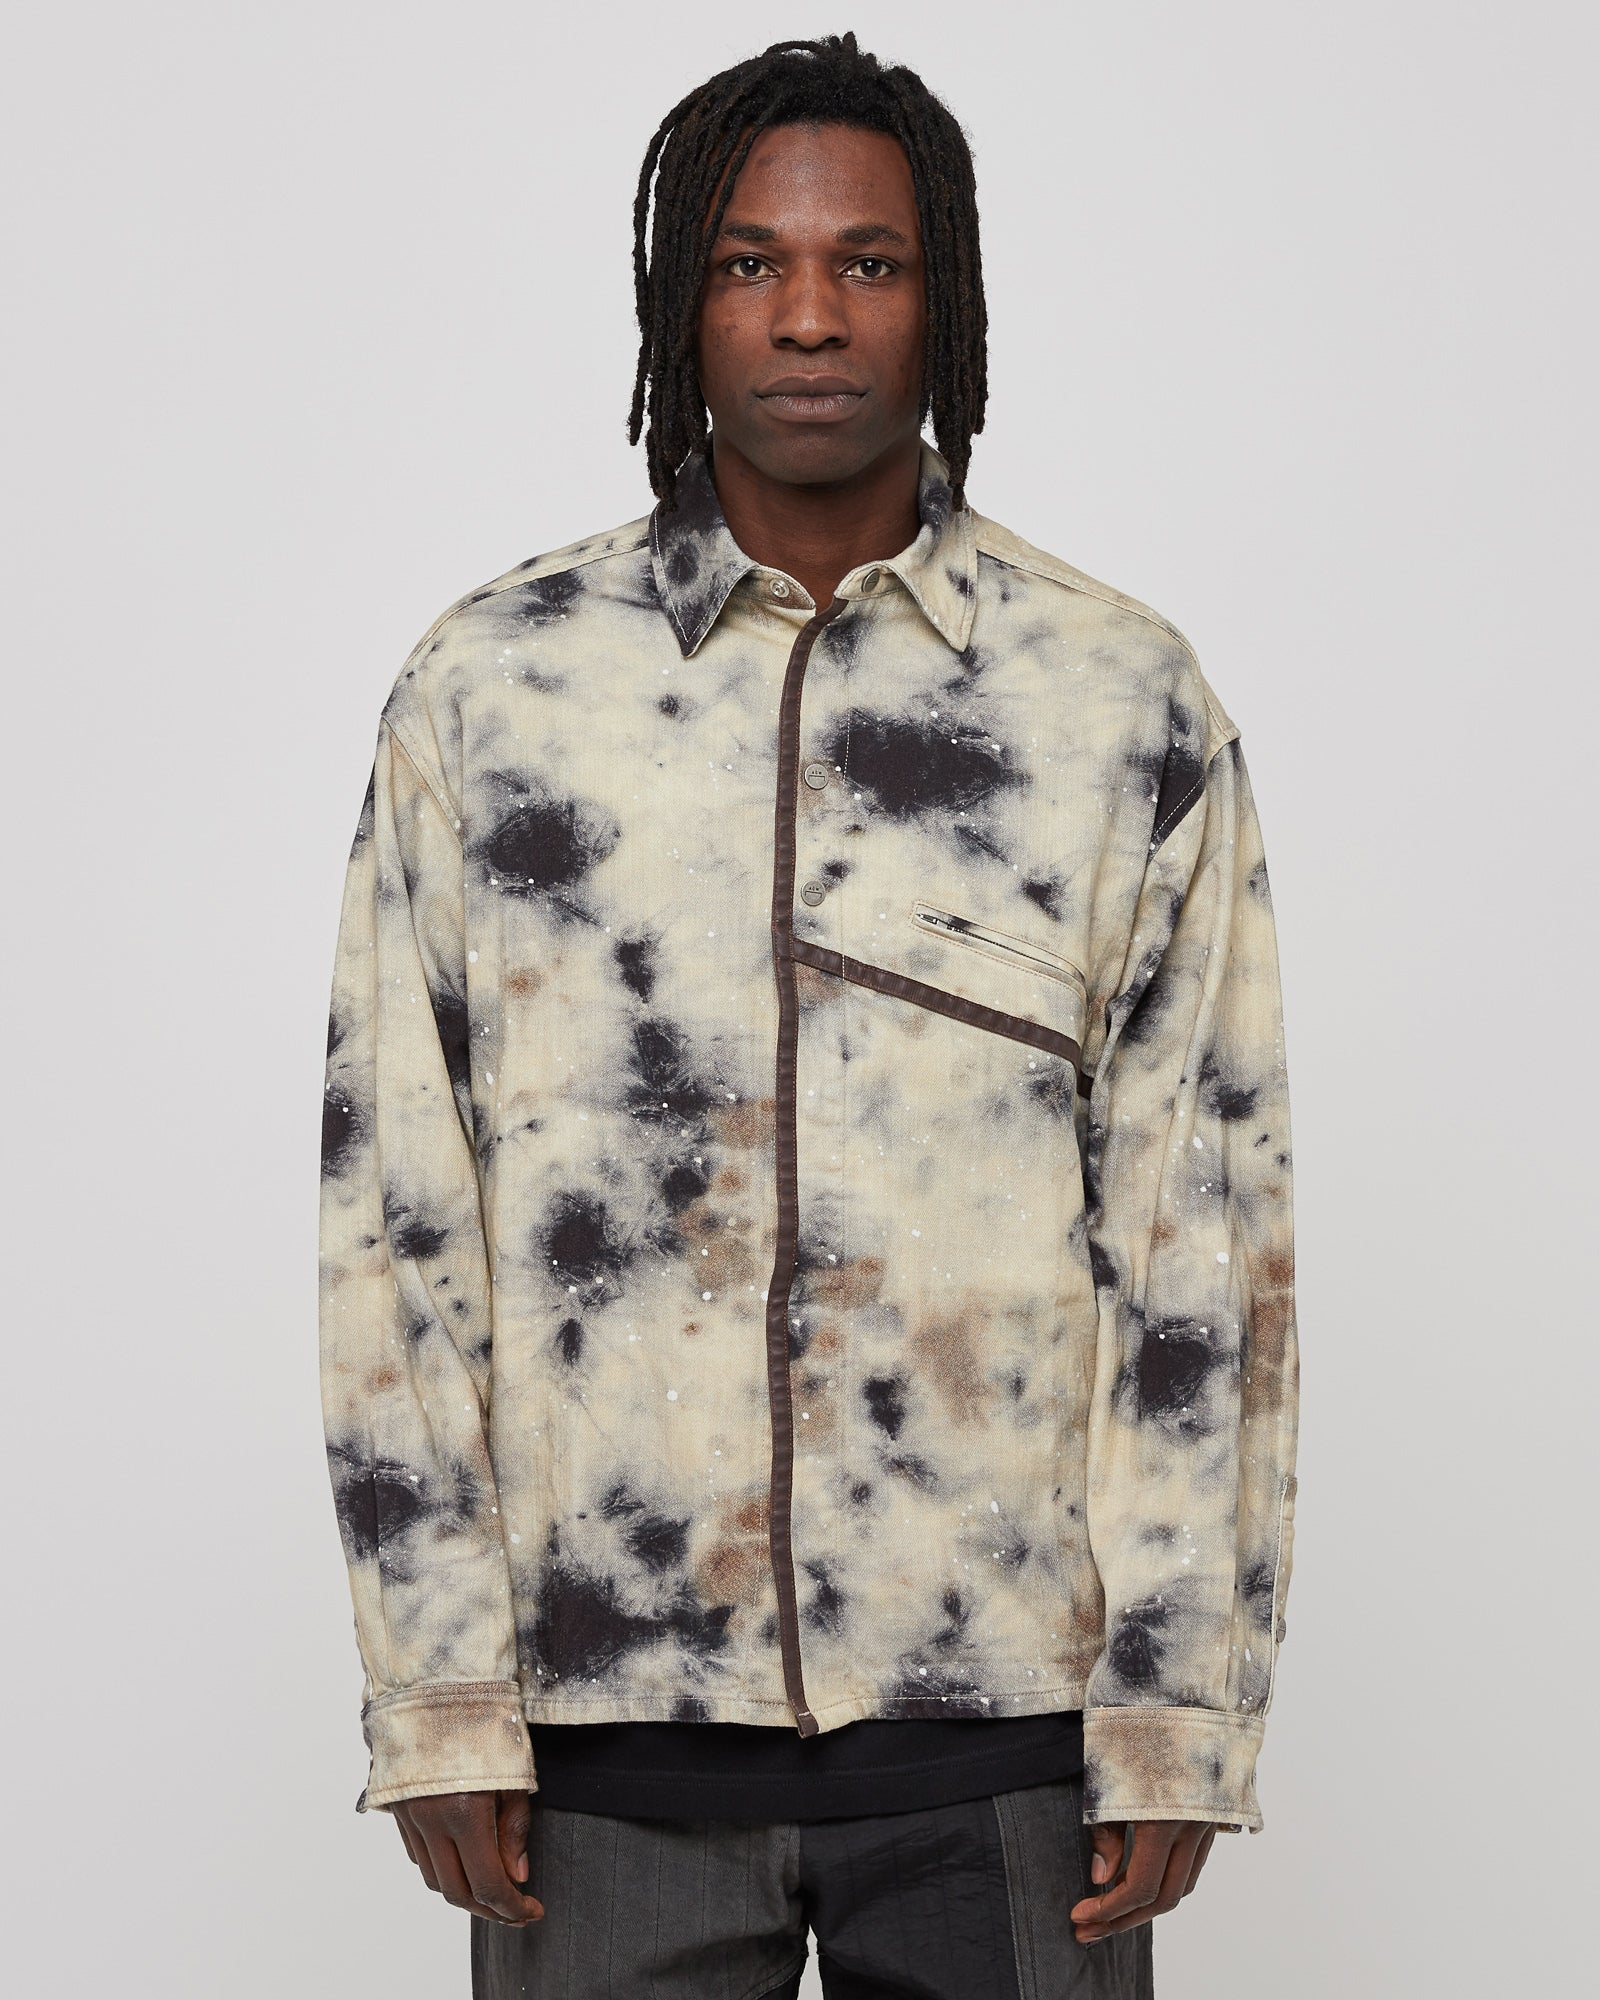 Diesel Red Tag Stain Print Overshirt in Beige